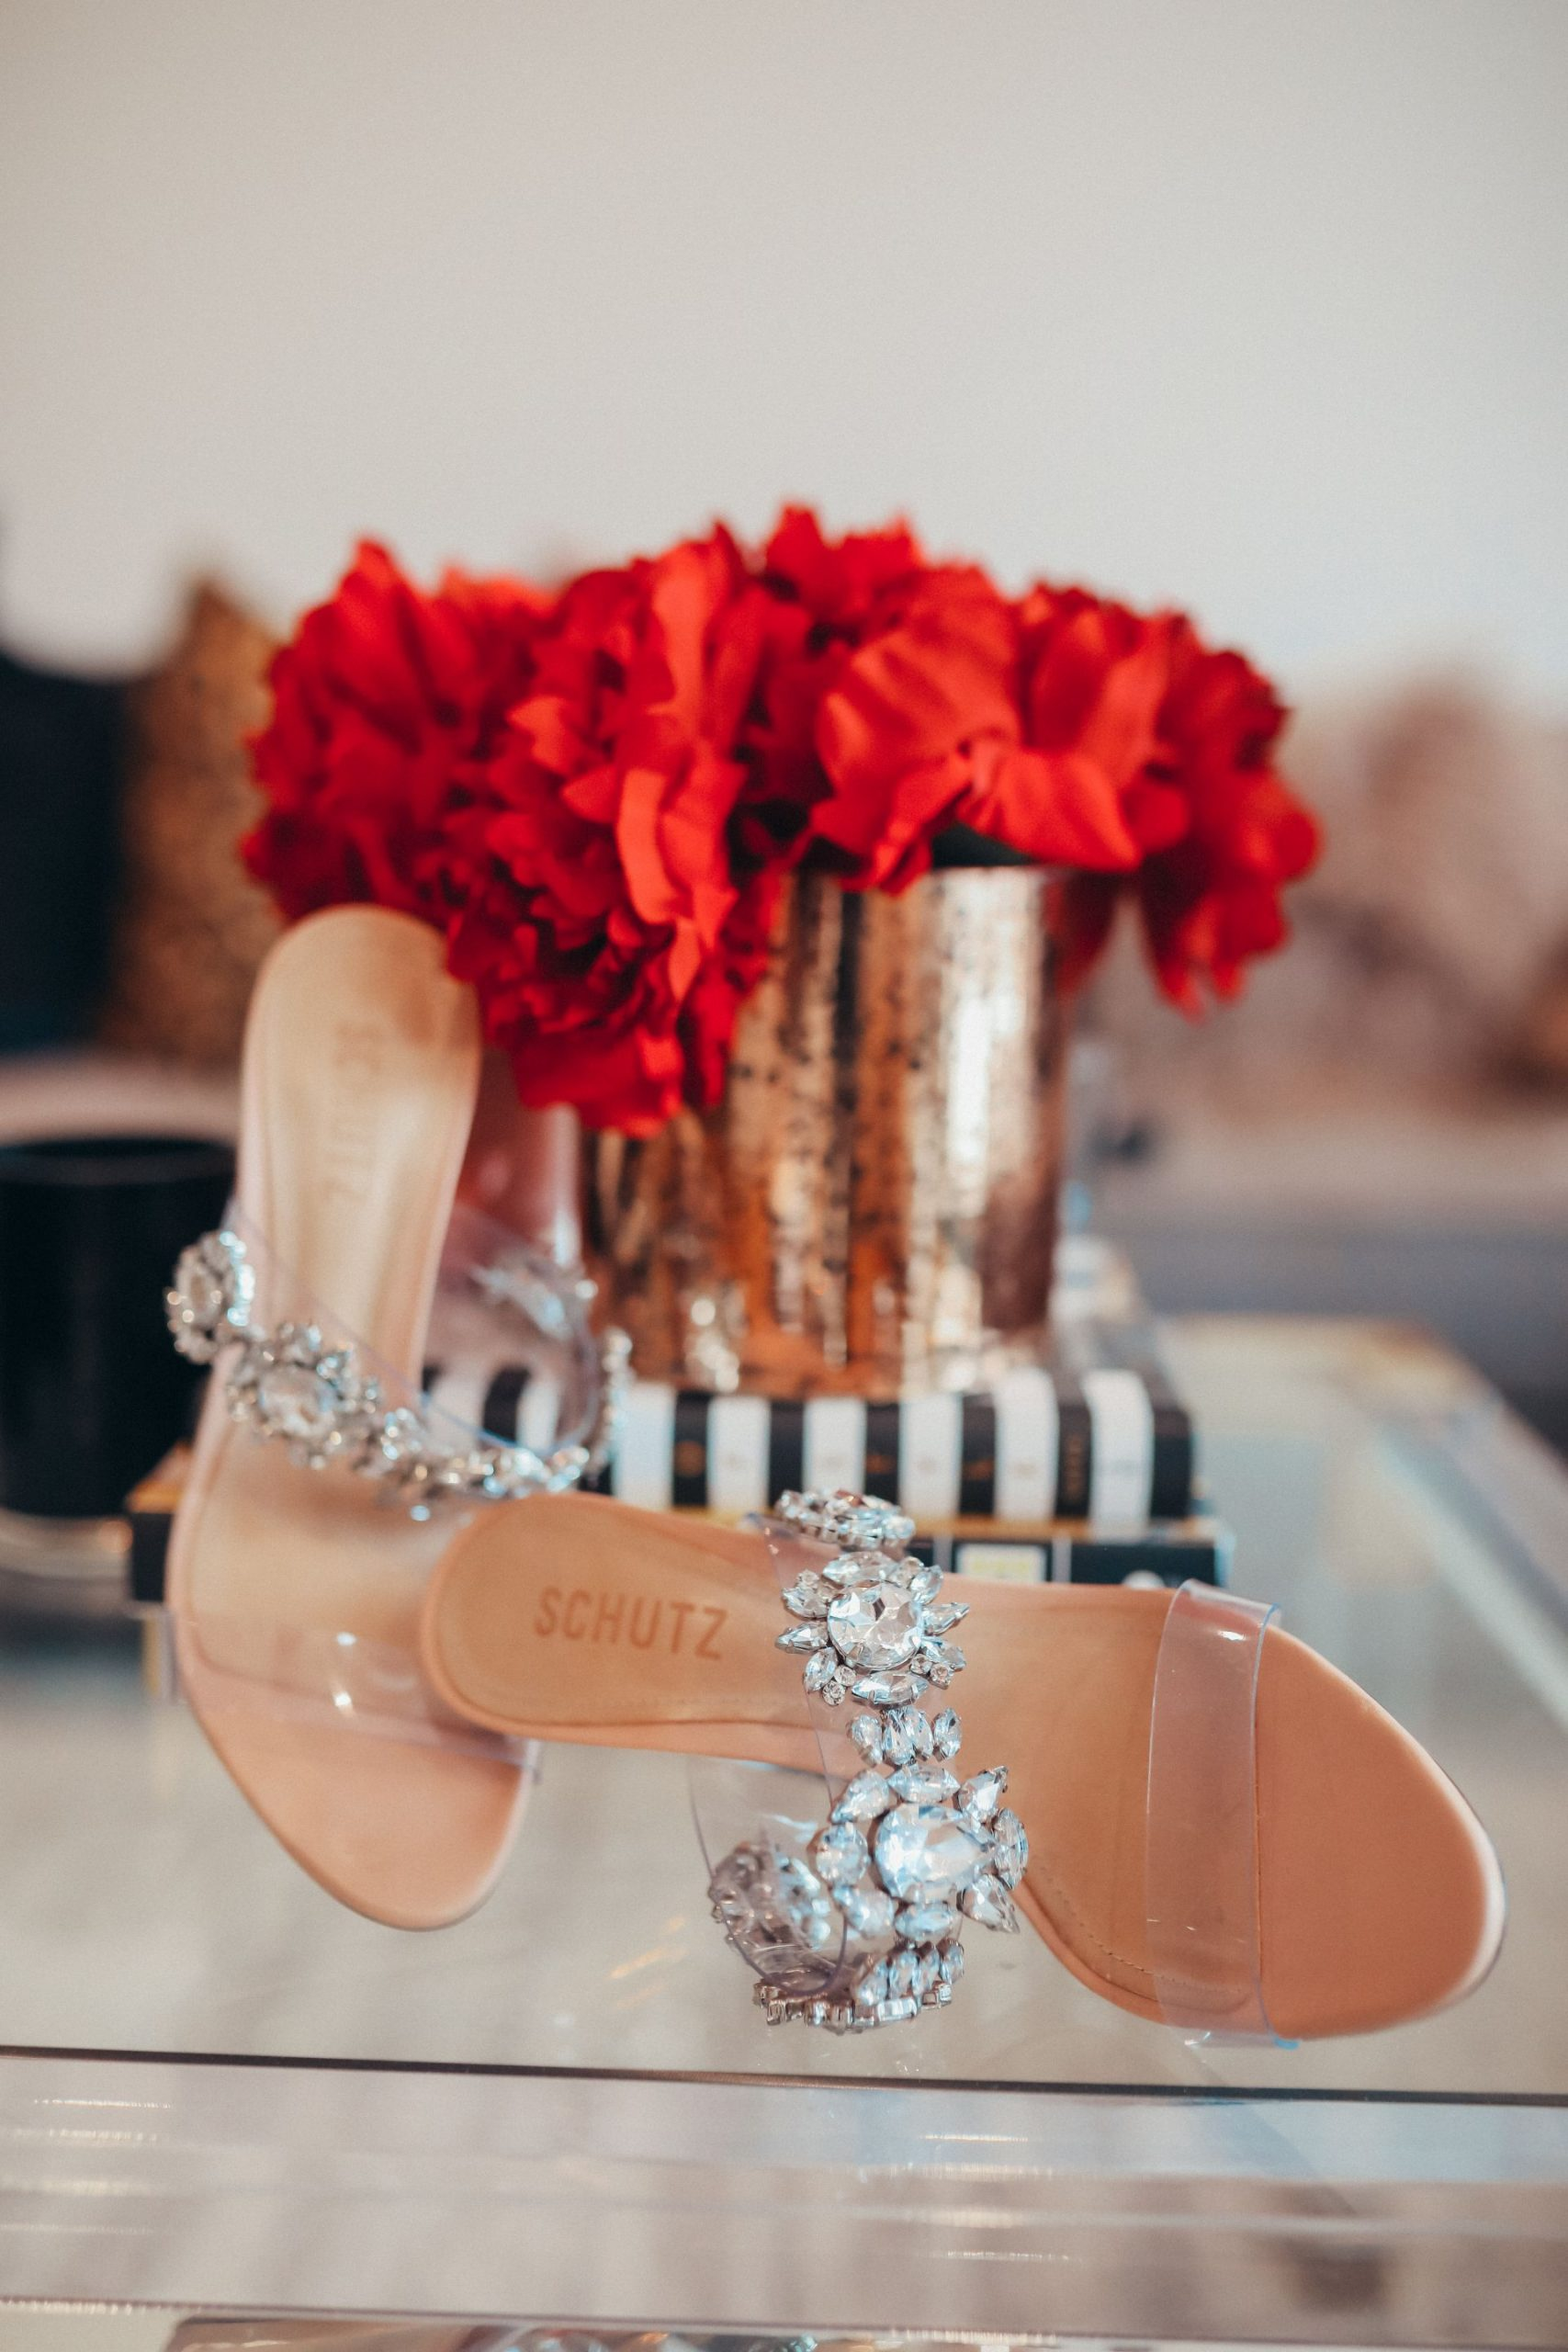 intimate questions, Q&A questions, rapid fire question ideas, Red Soles and Red Wine, Jennifer Worman, Schutz Blanck Clear Slide Sandal, clear heels, clear heeled sandals, crystal sandals, sandals for Spring